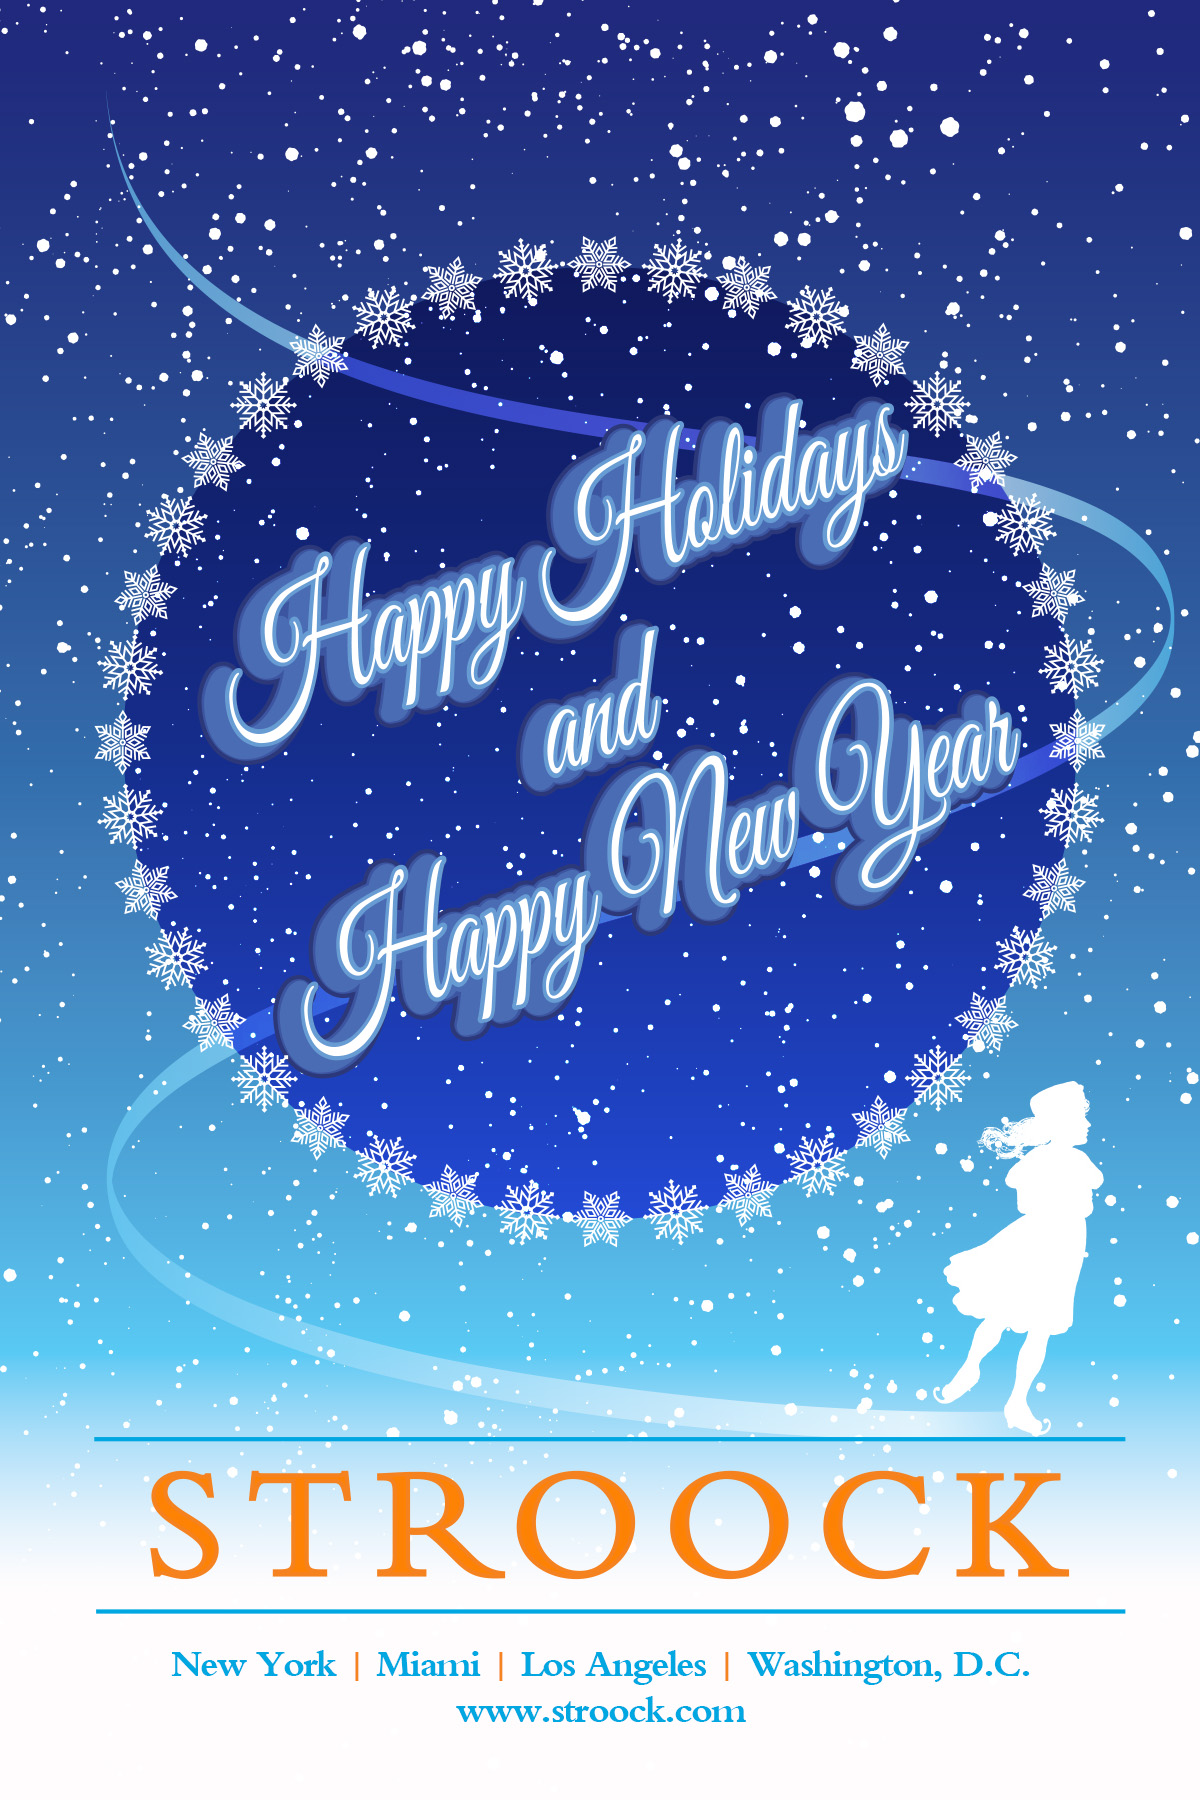 Stroock Holiday Card